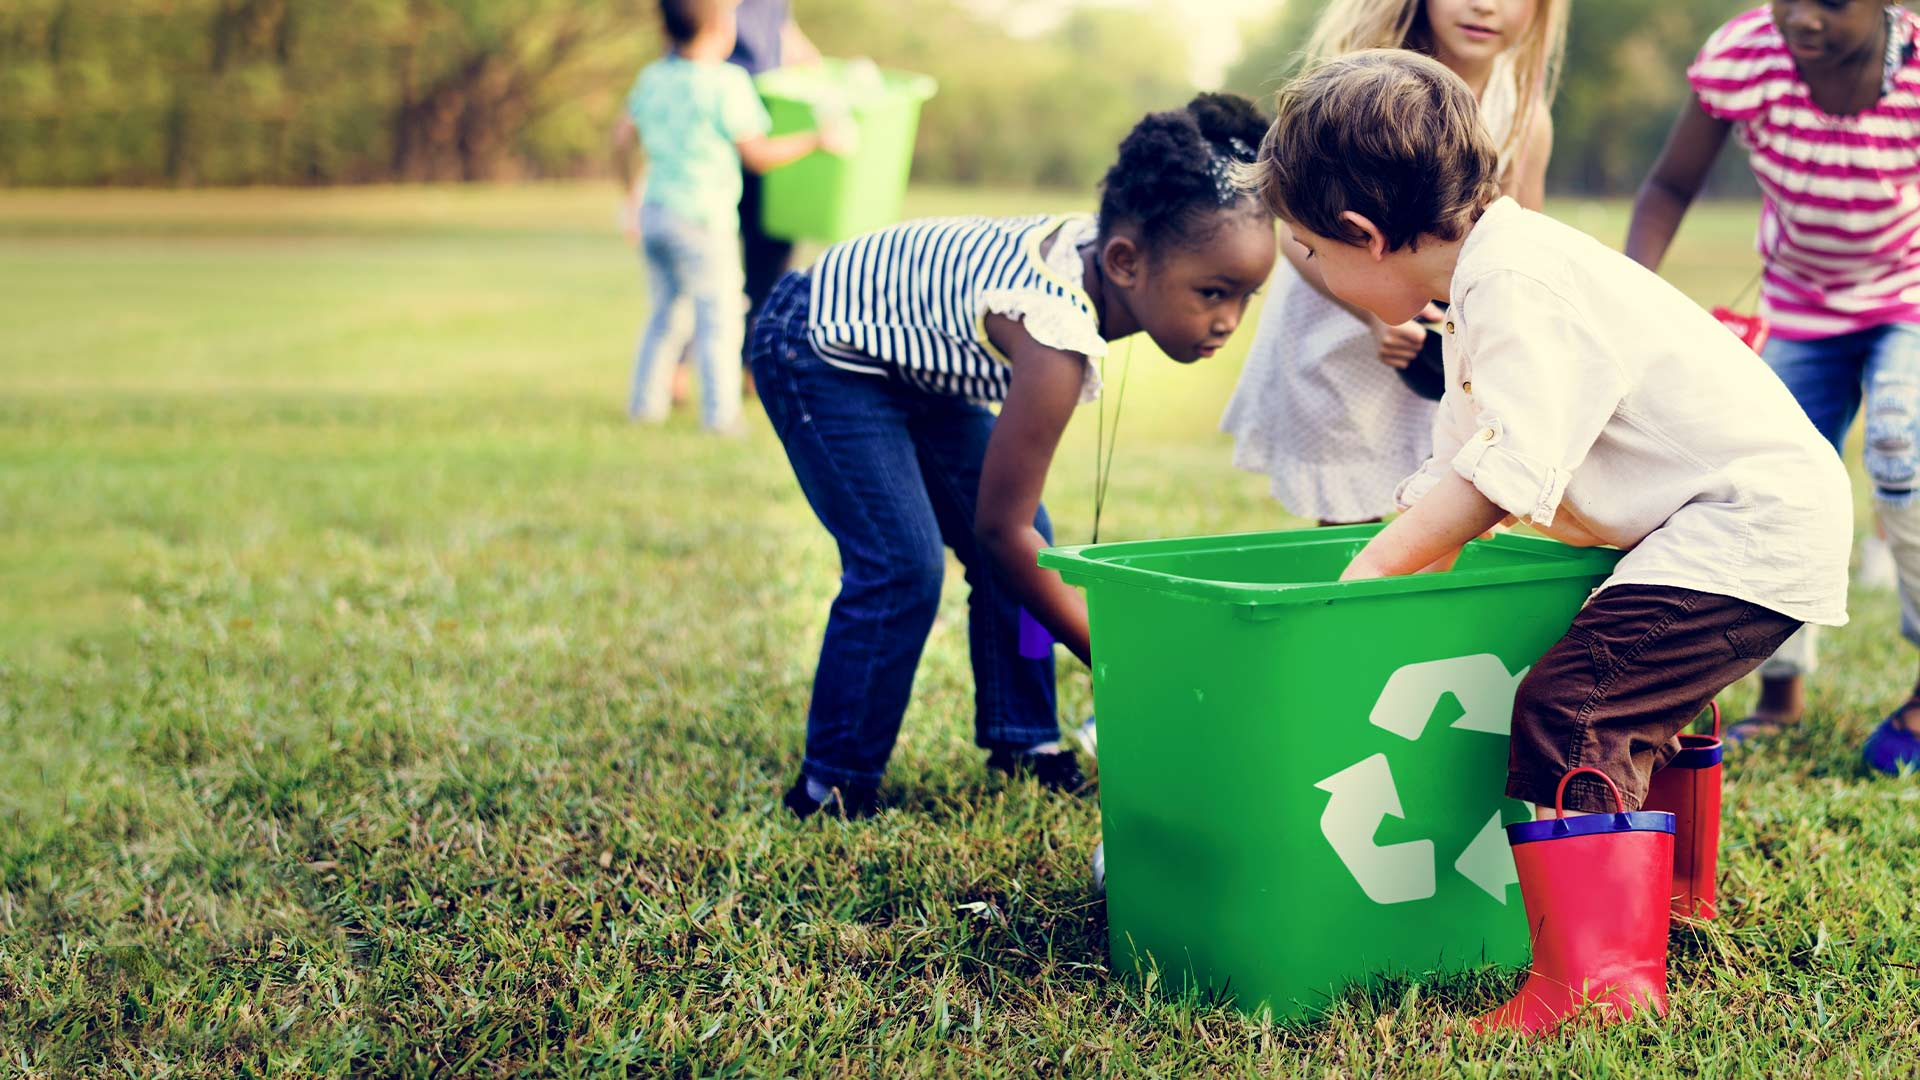 kids volunteering picking up trash and recycling